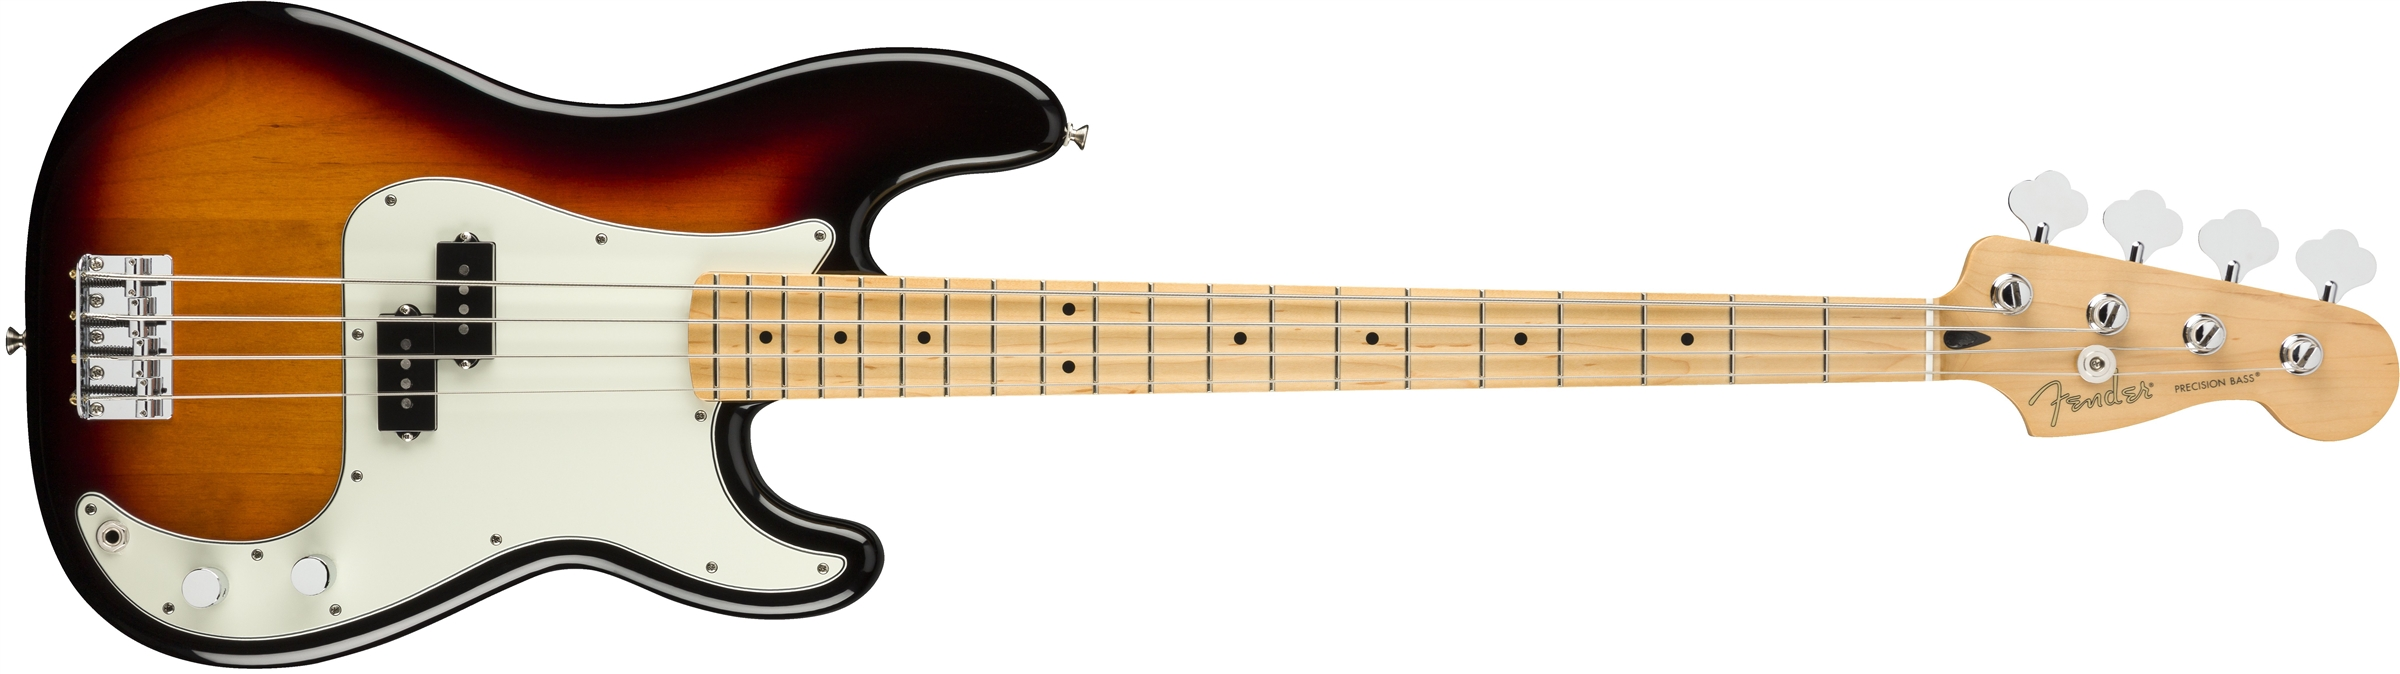 Fender Player Series P Bass MN 3TS